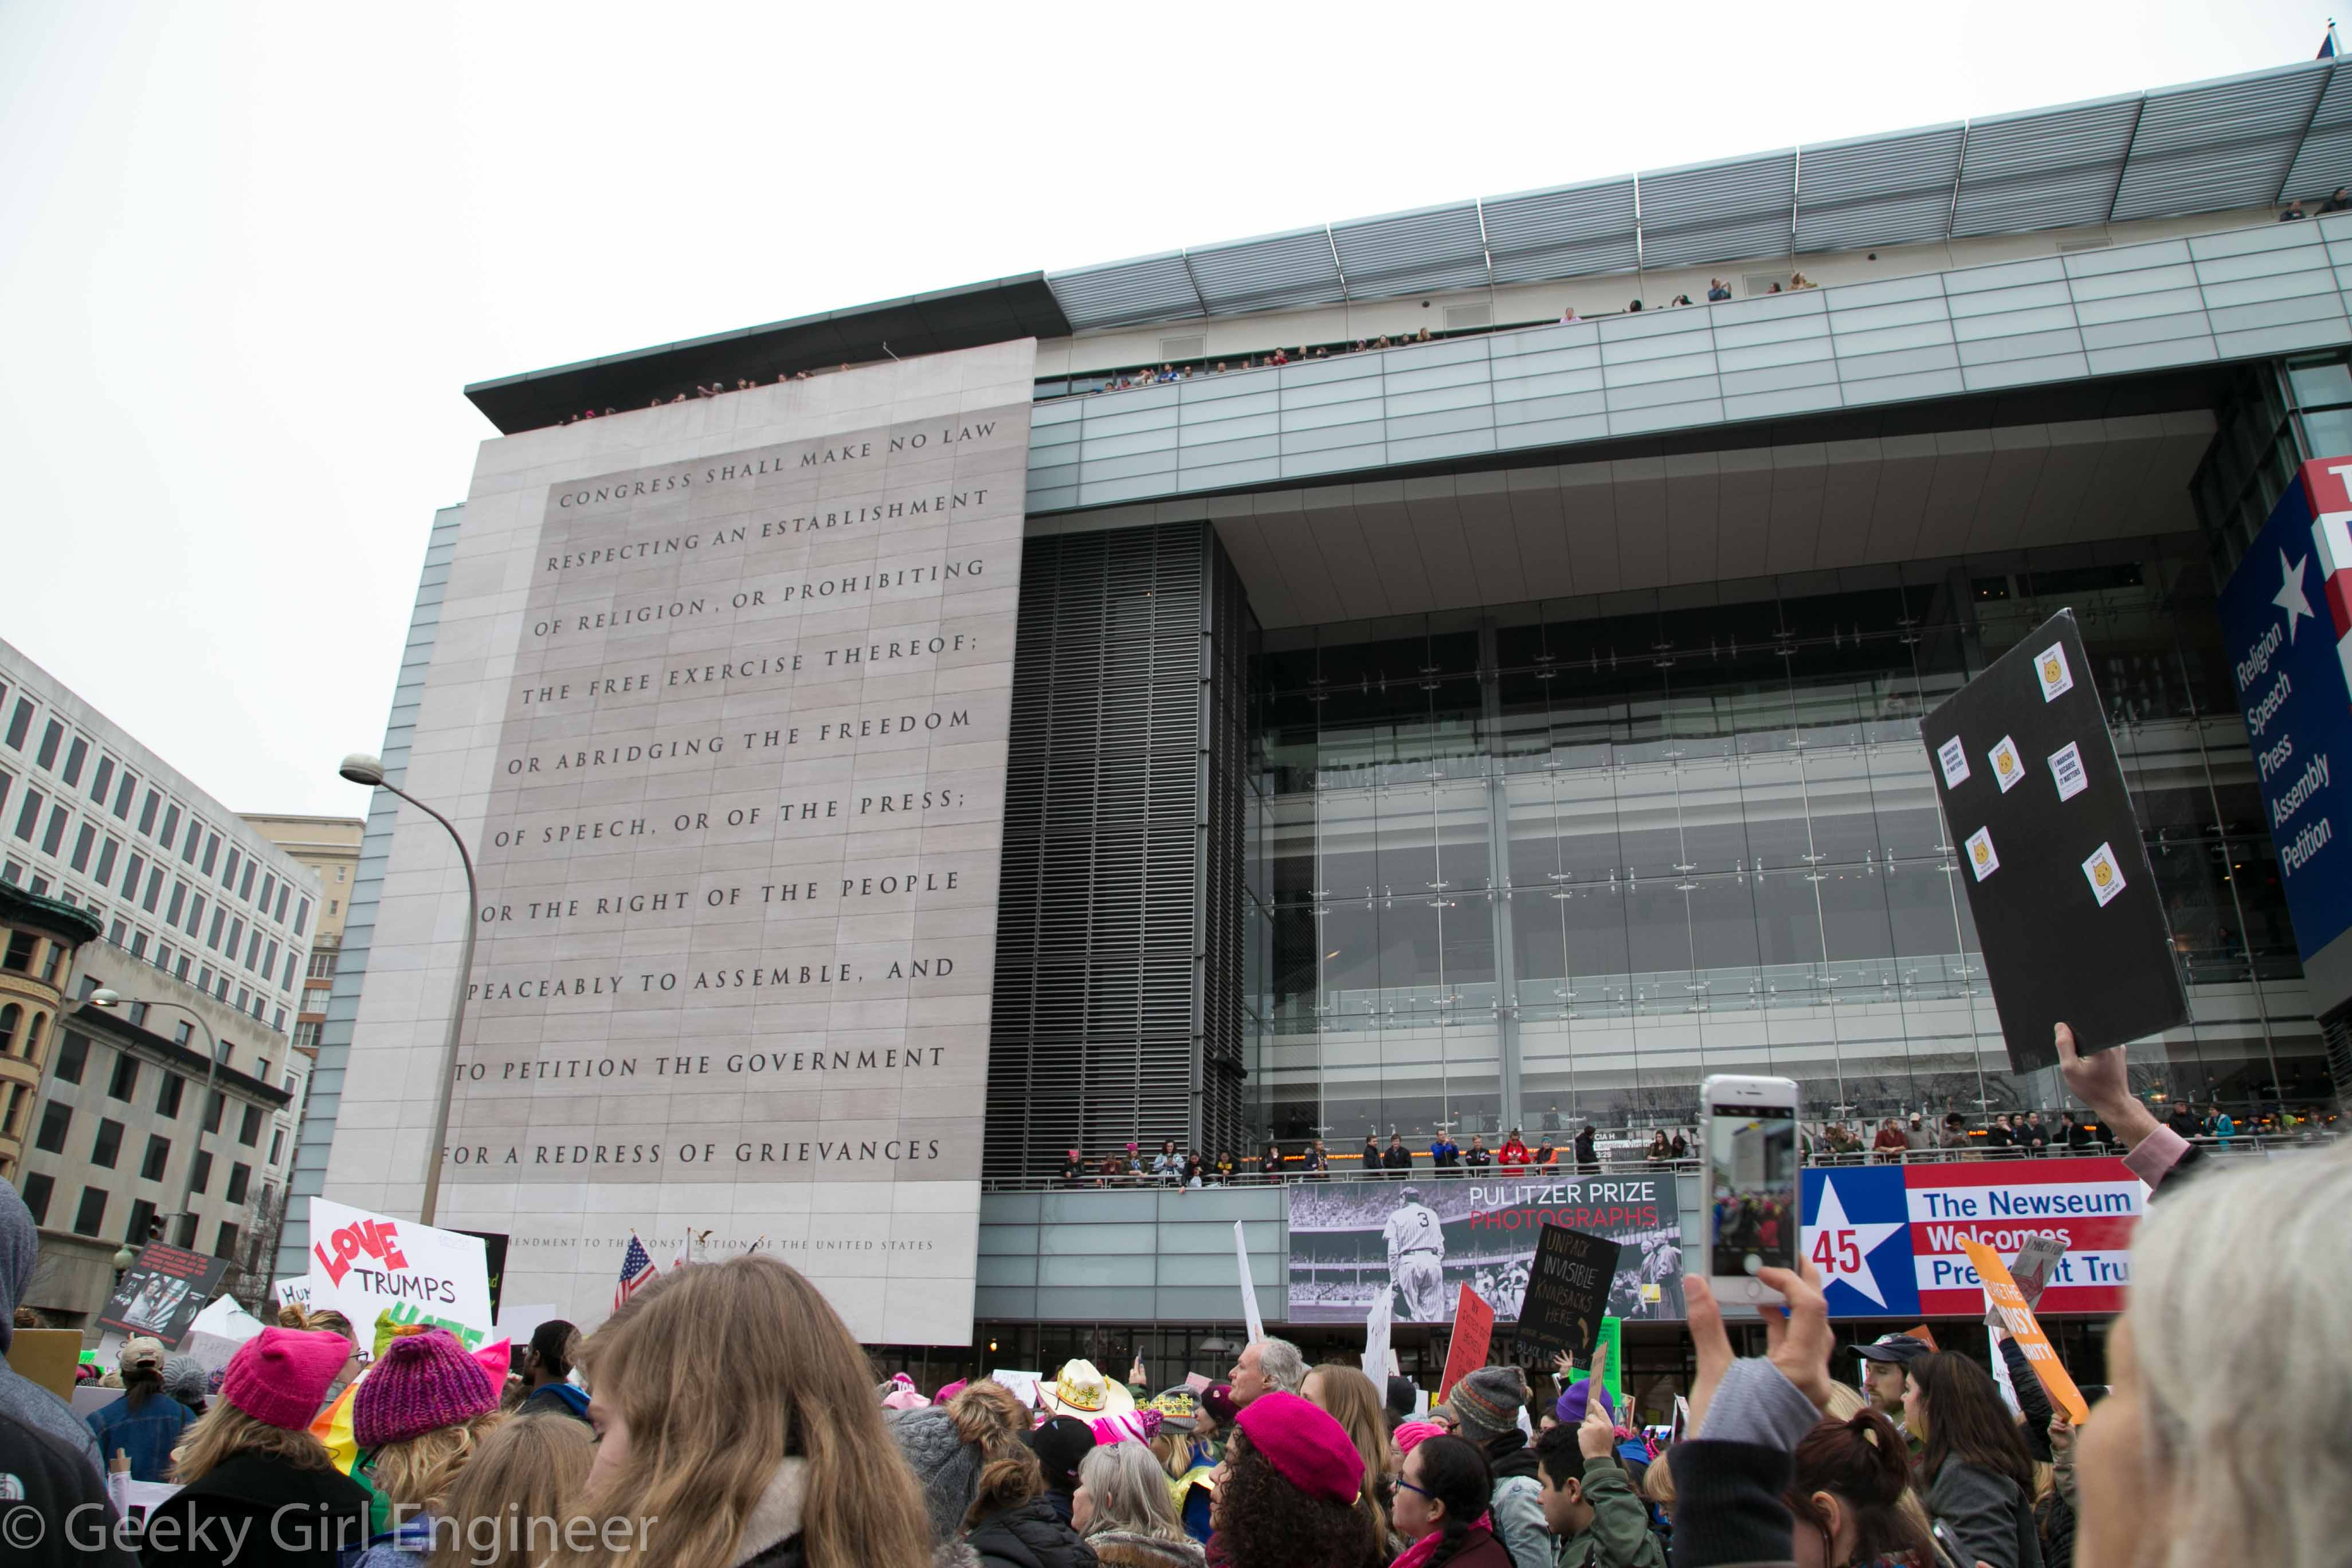 """An interesting contrast of people exercising their First Amendment Rights, in front  of the Newseum with the First Amendment written on the side of the building with people cheering from the building with a """"Welcome President Trump"""" sign"""